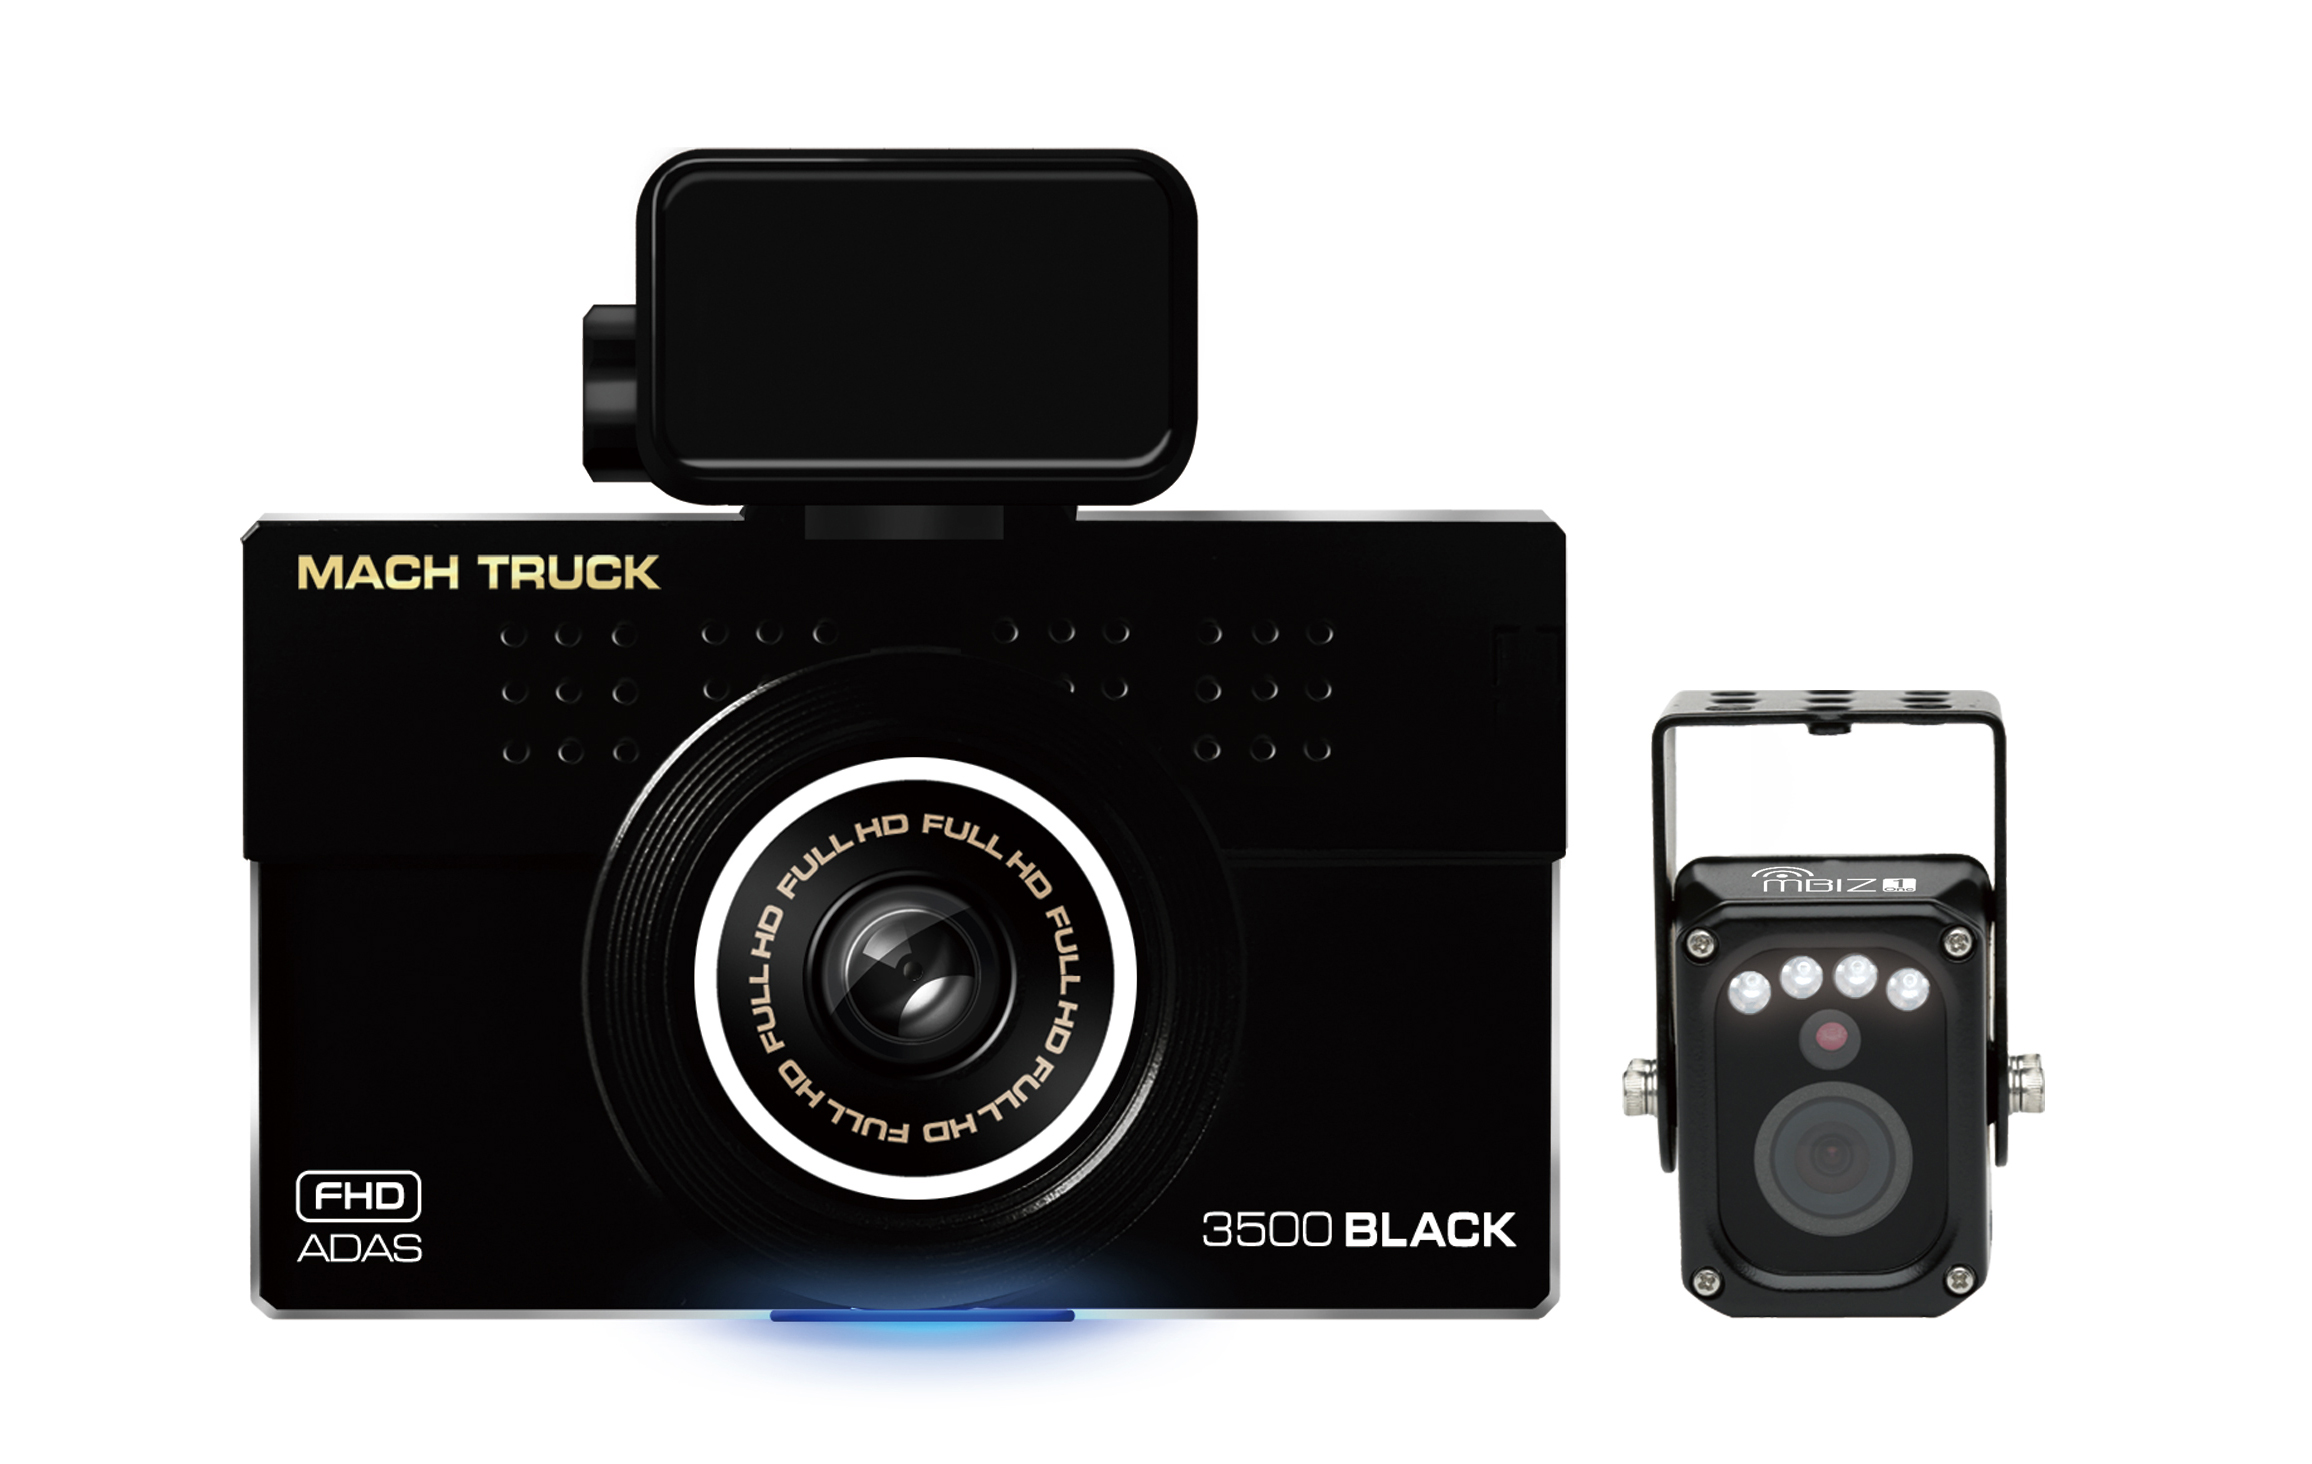 Mach Truck 3500 Black, 2 channel Full HD+D1 commercial vehicle dash cam